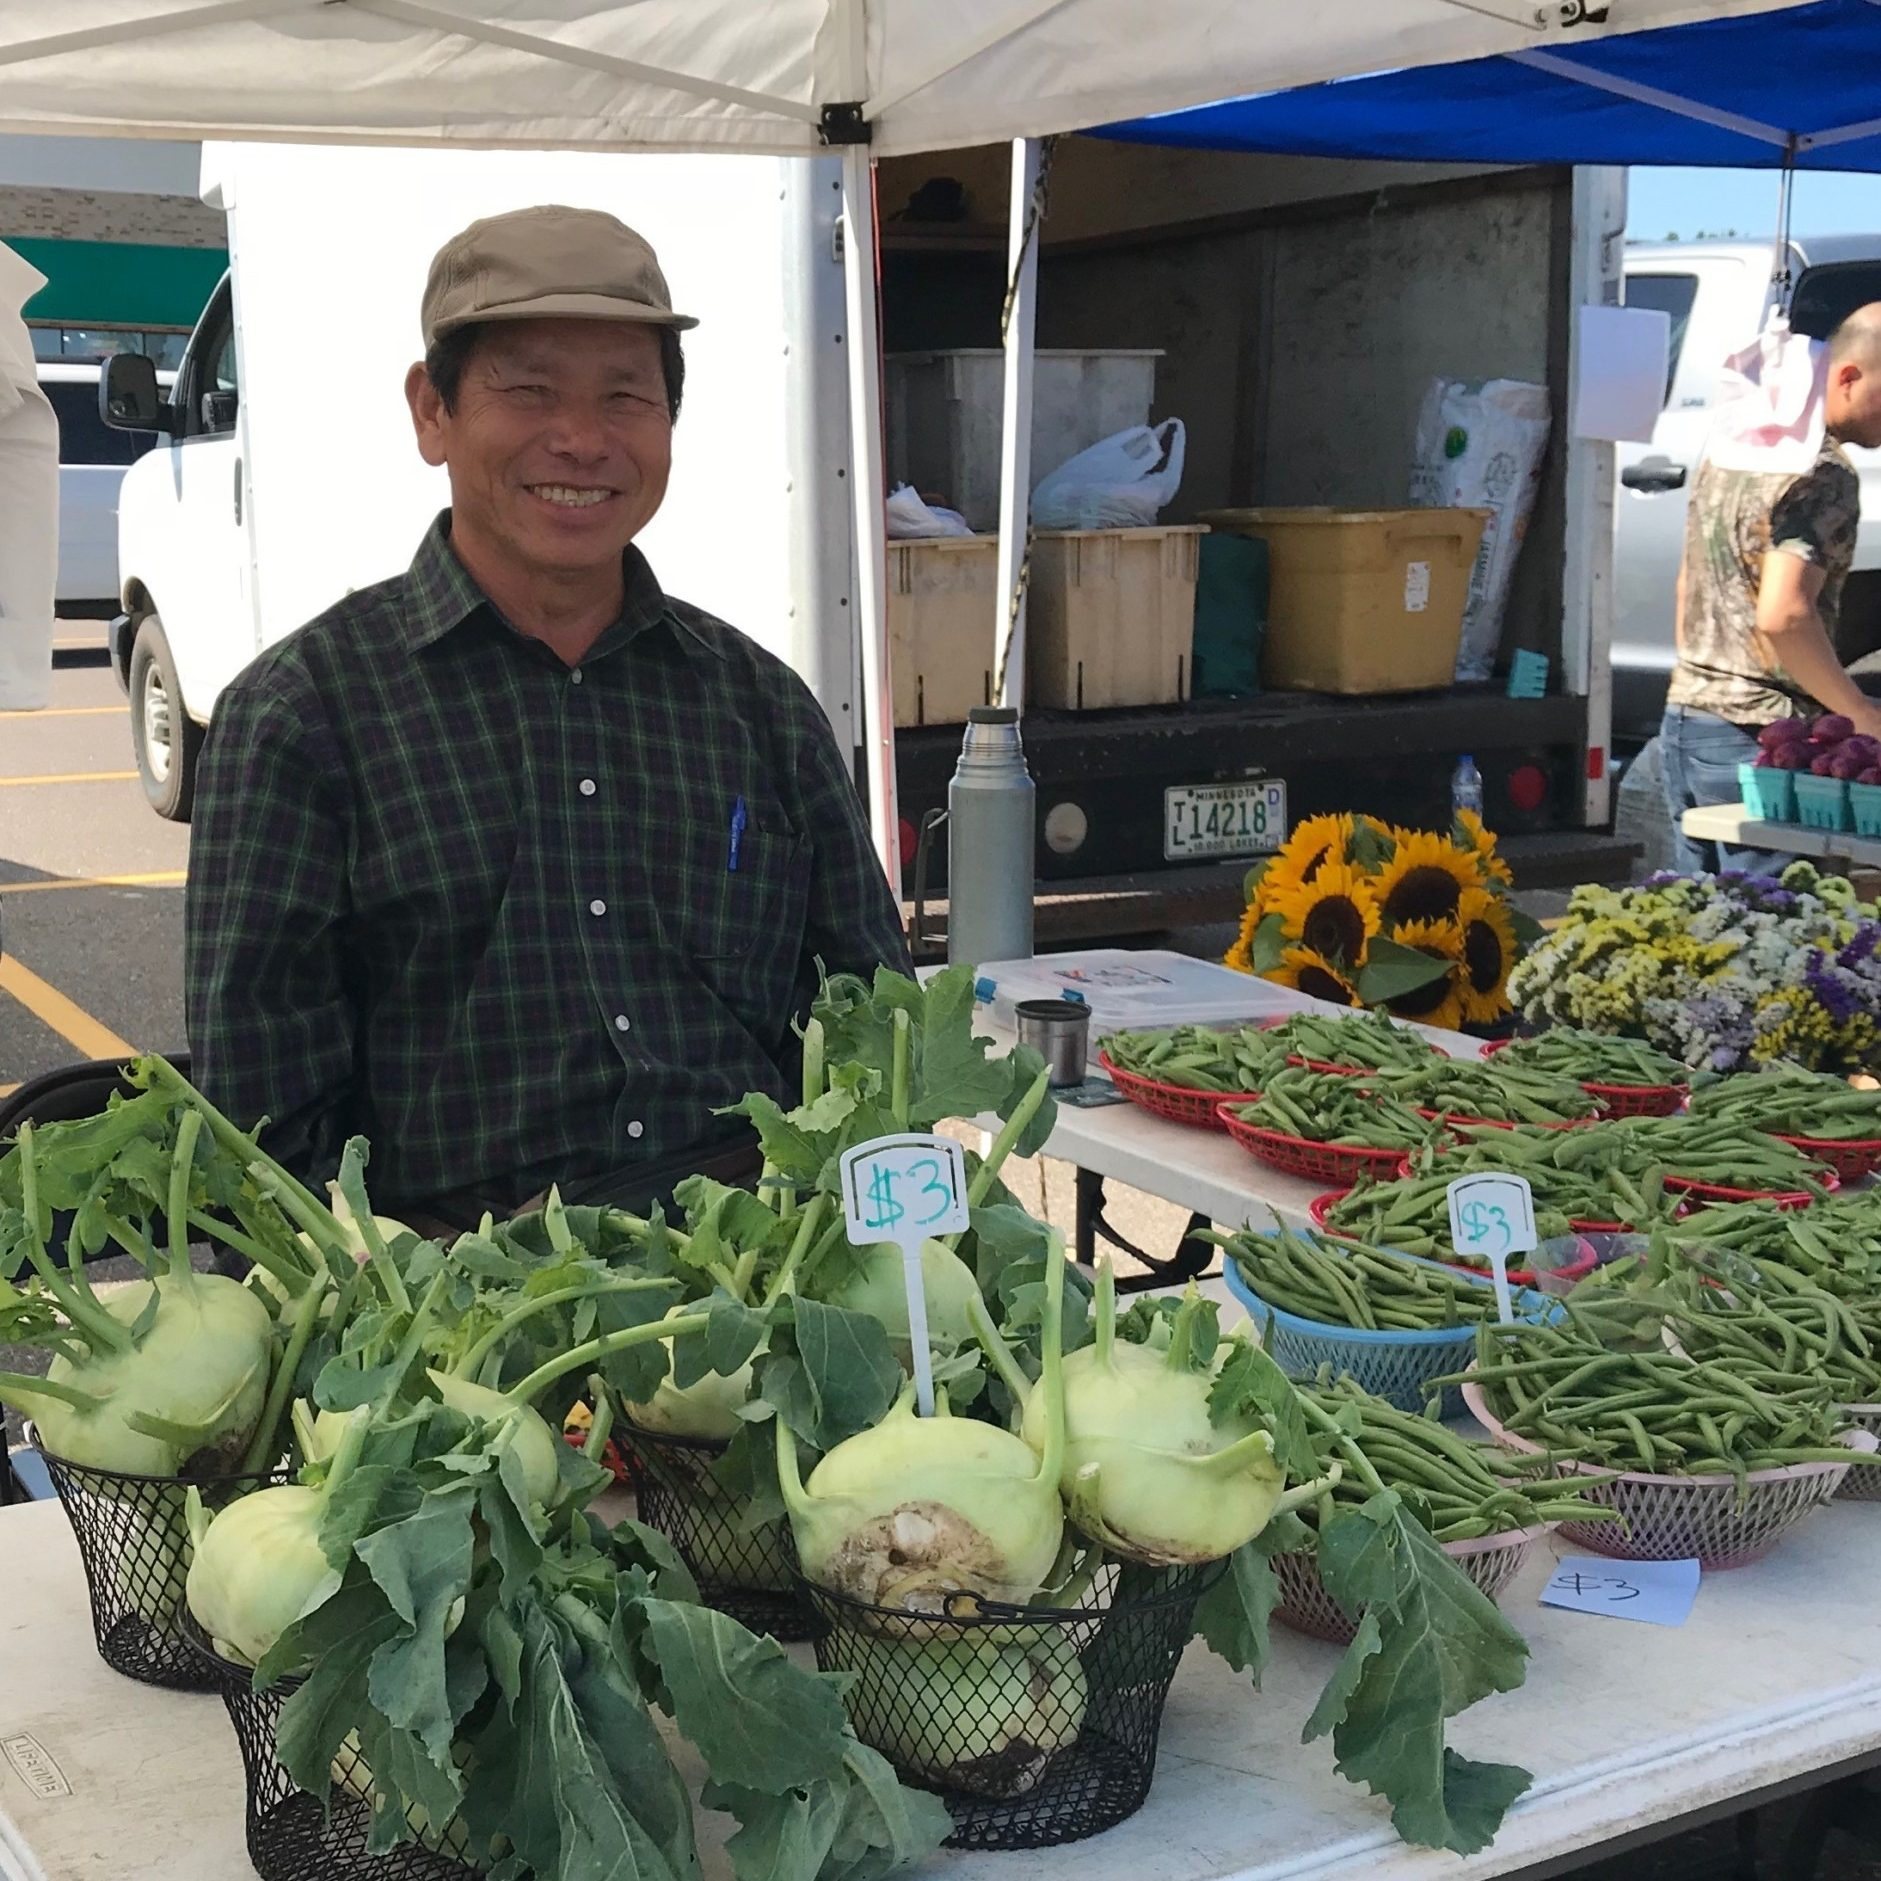 man smiling behind booth selling kohlrabi and green beans